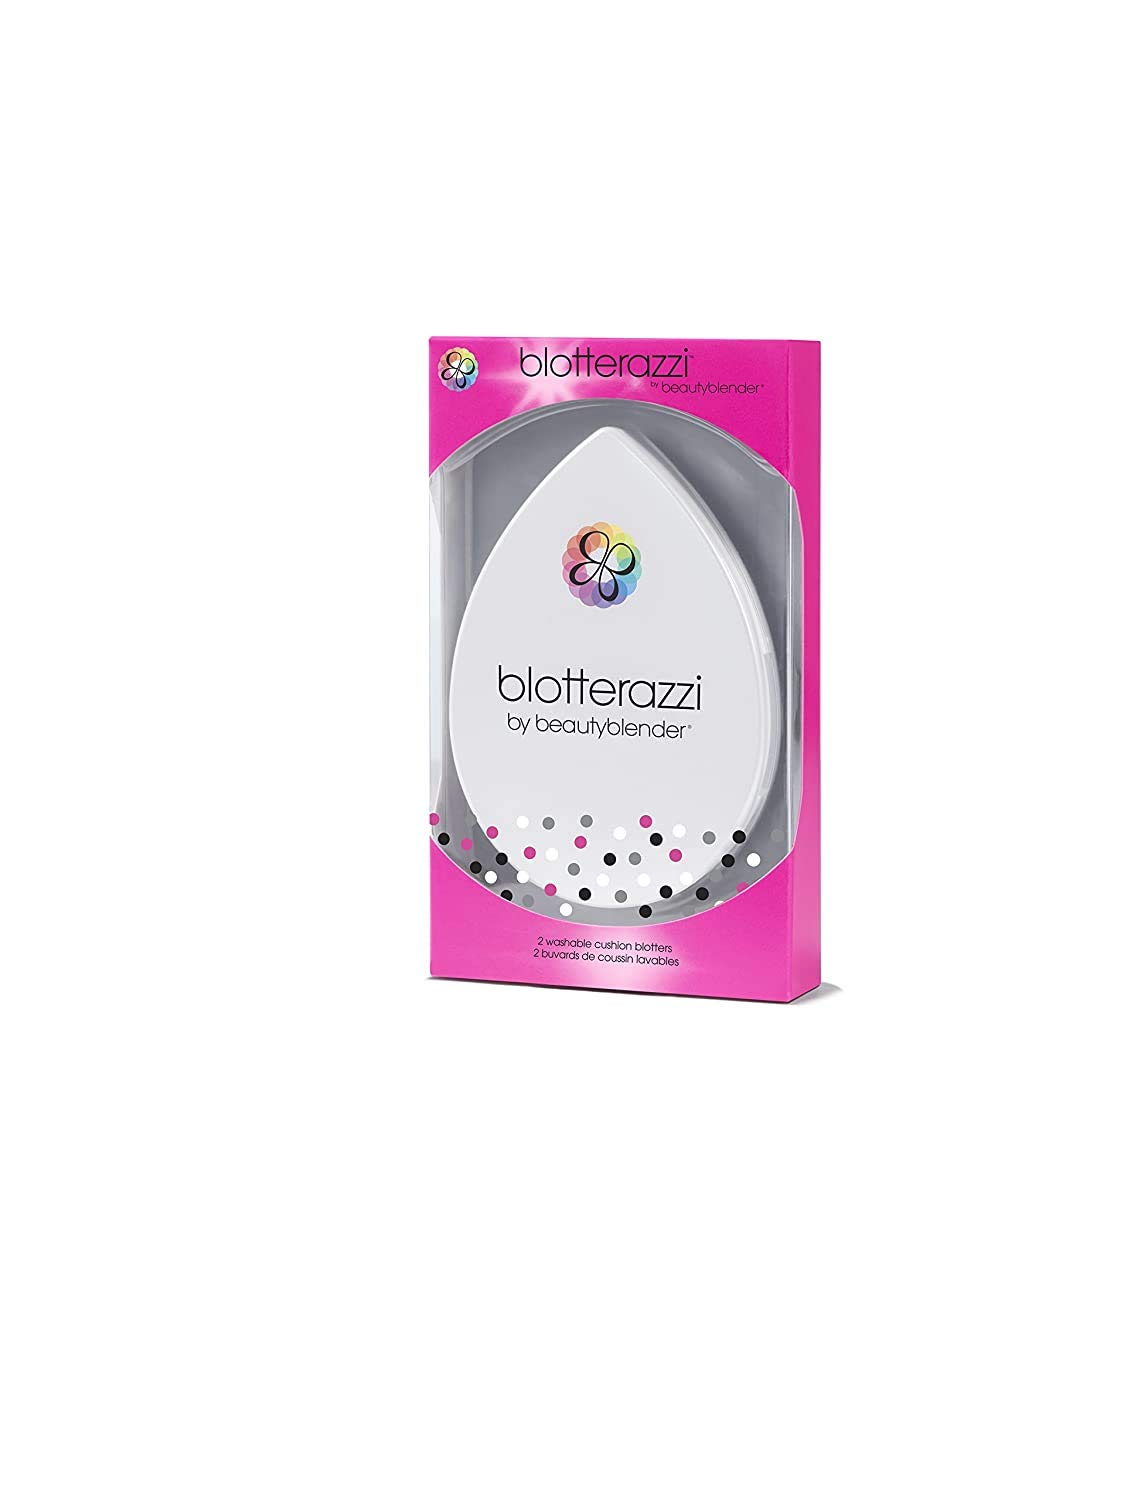 BEAUTYBLENDER Blotterazzi Reusable Makeup Blotting Pad with Mirrored Compact. Vegan, Cruelty Free and Made in the USA : Beauty